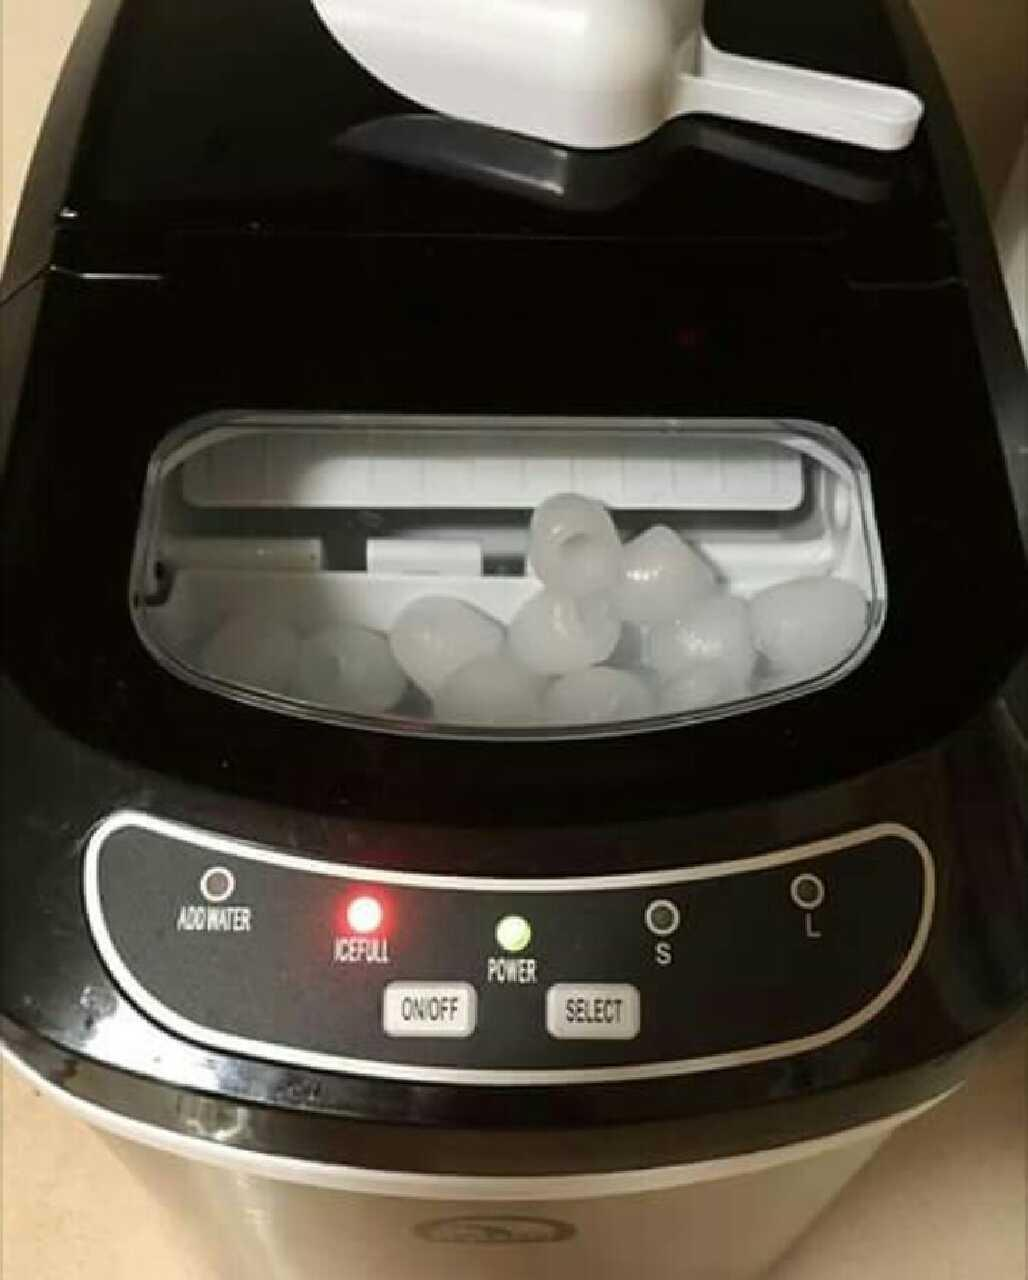 Countertop Ice Maker For Sale : Find more Vgc Countertop Ice Maker for sale at up to 90% off ...